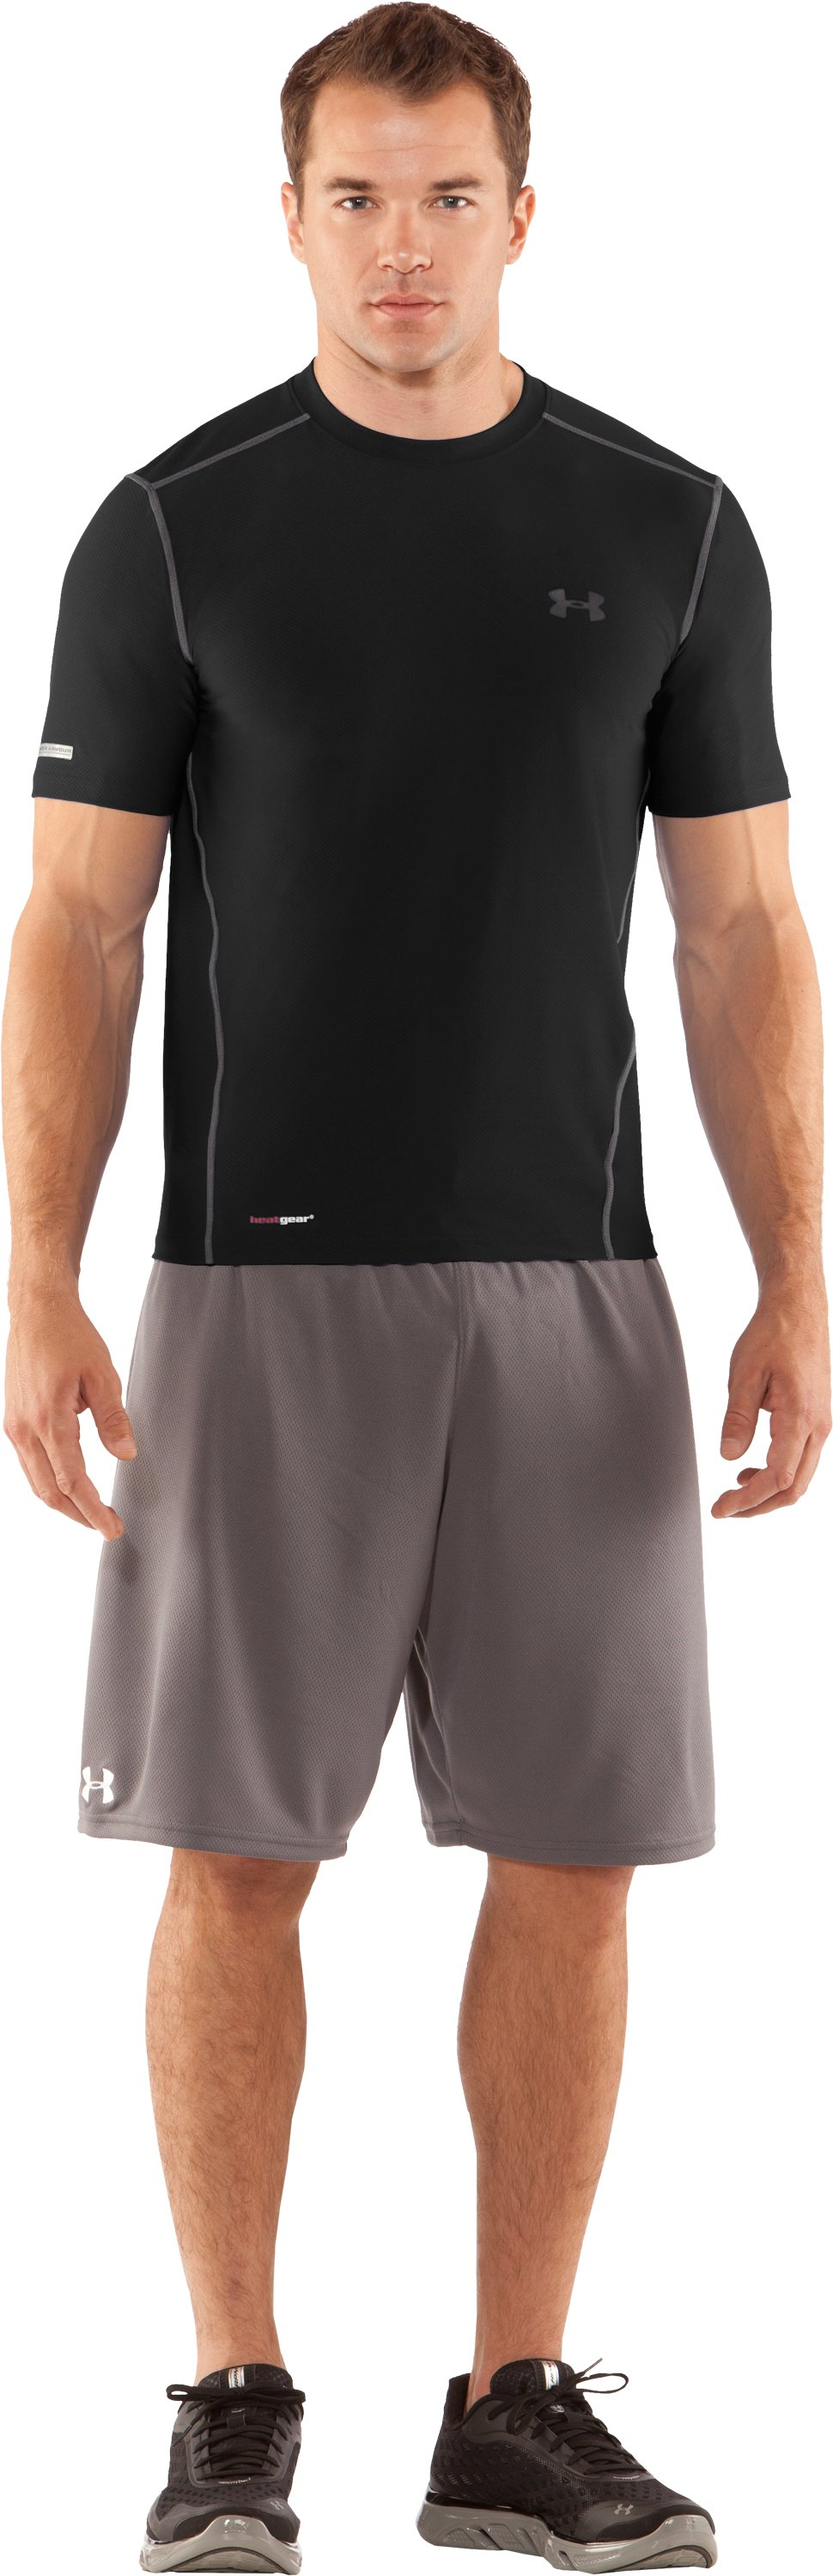 Men's HeatGear® Fitted Short Sleeve Crew, Black